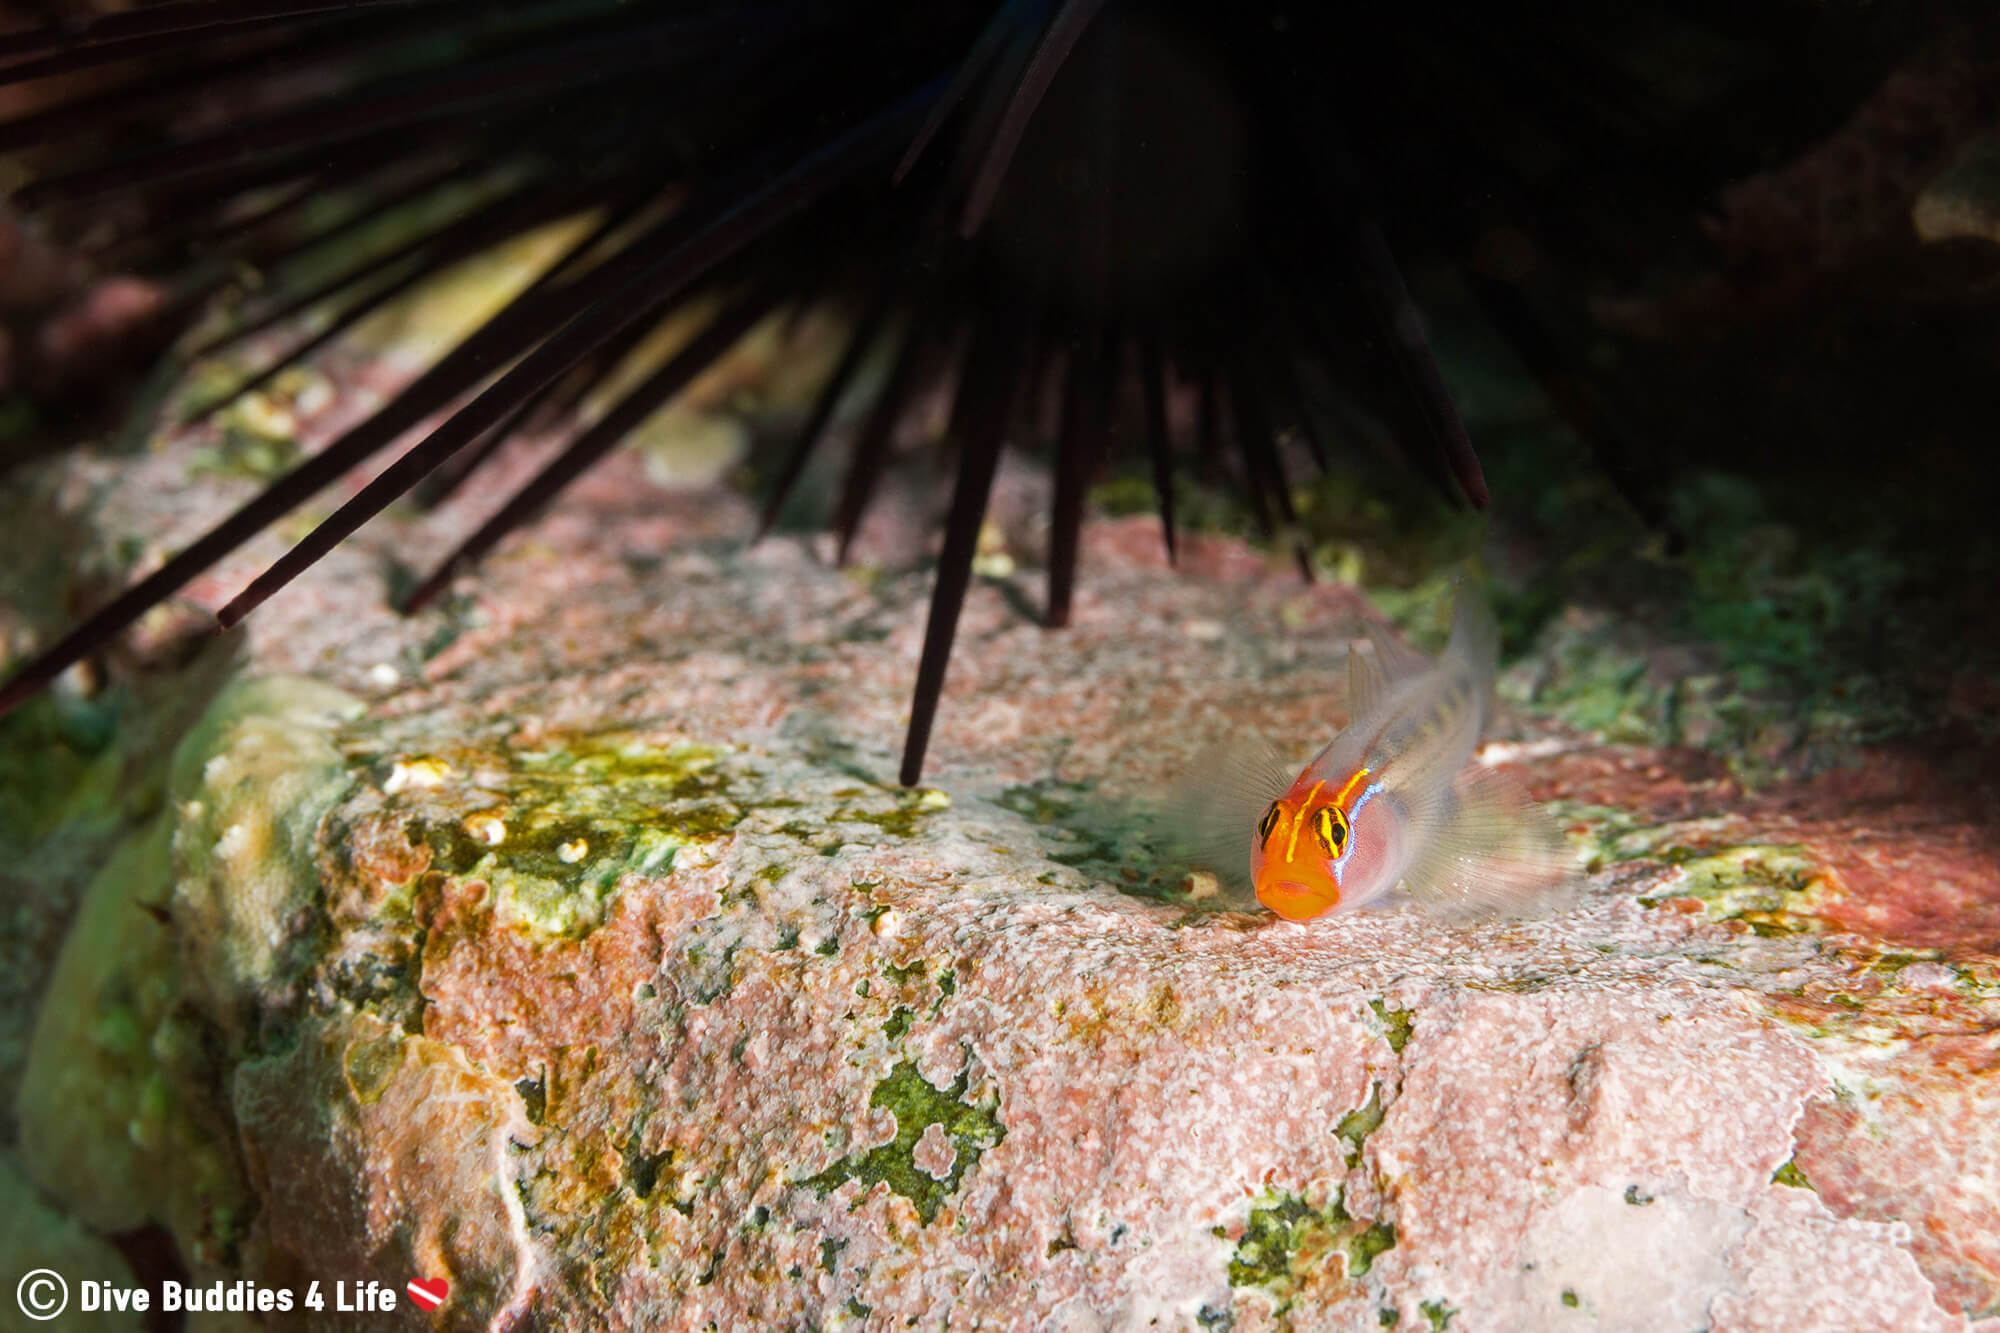 A Macro Fish On A Rock Ledge With A Black Sea Urchin In The Background, Zihuatanejo, Mexico